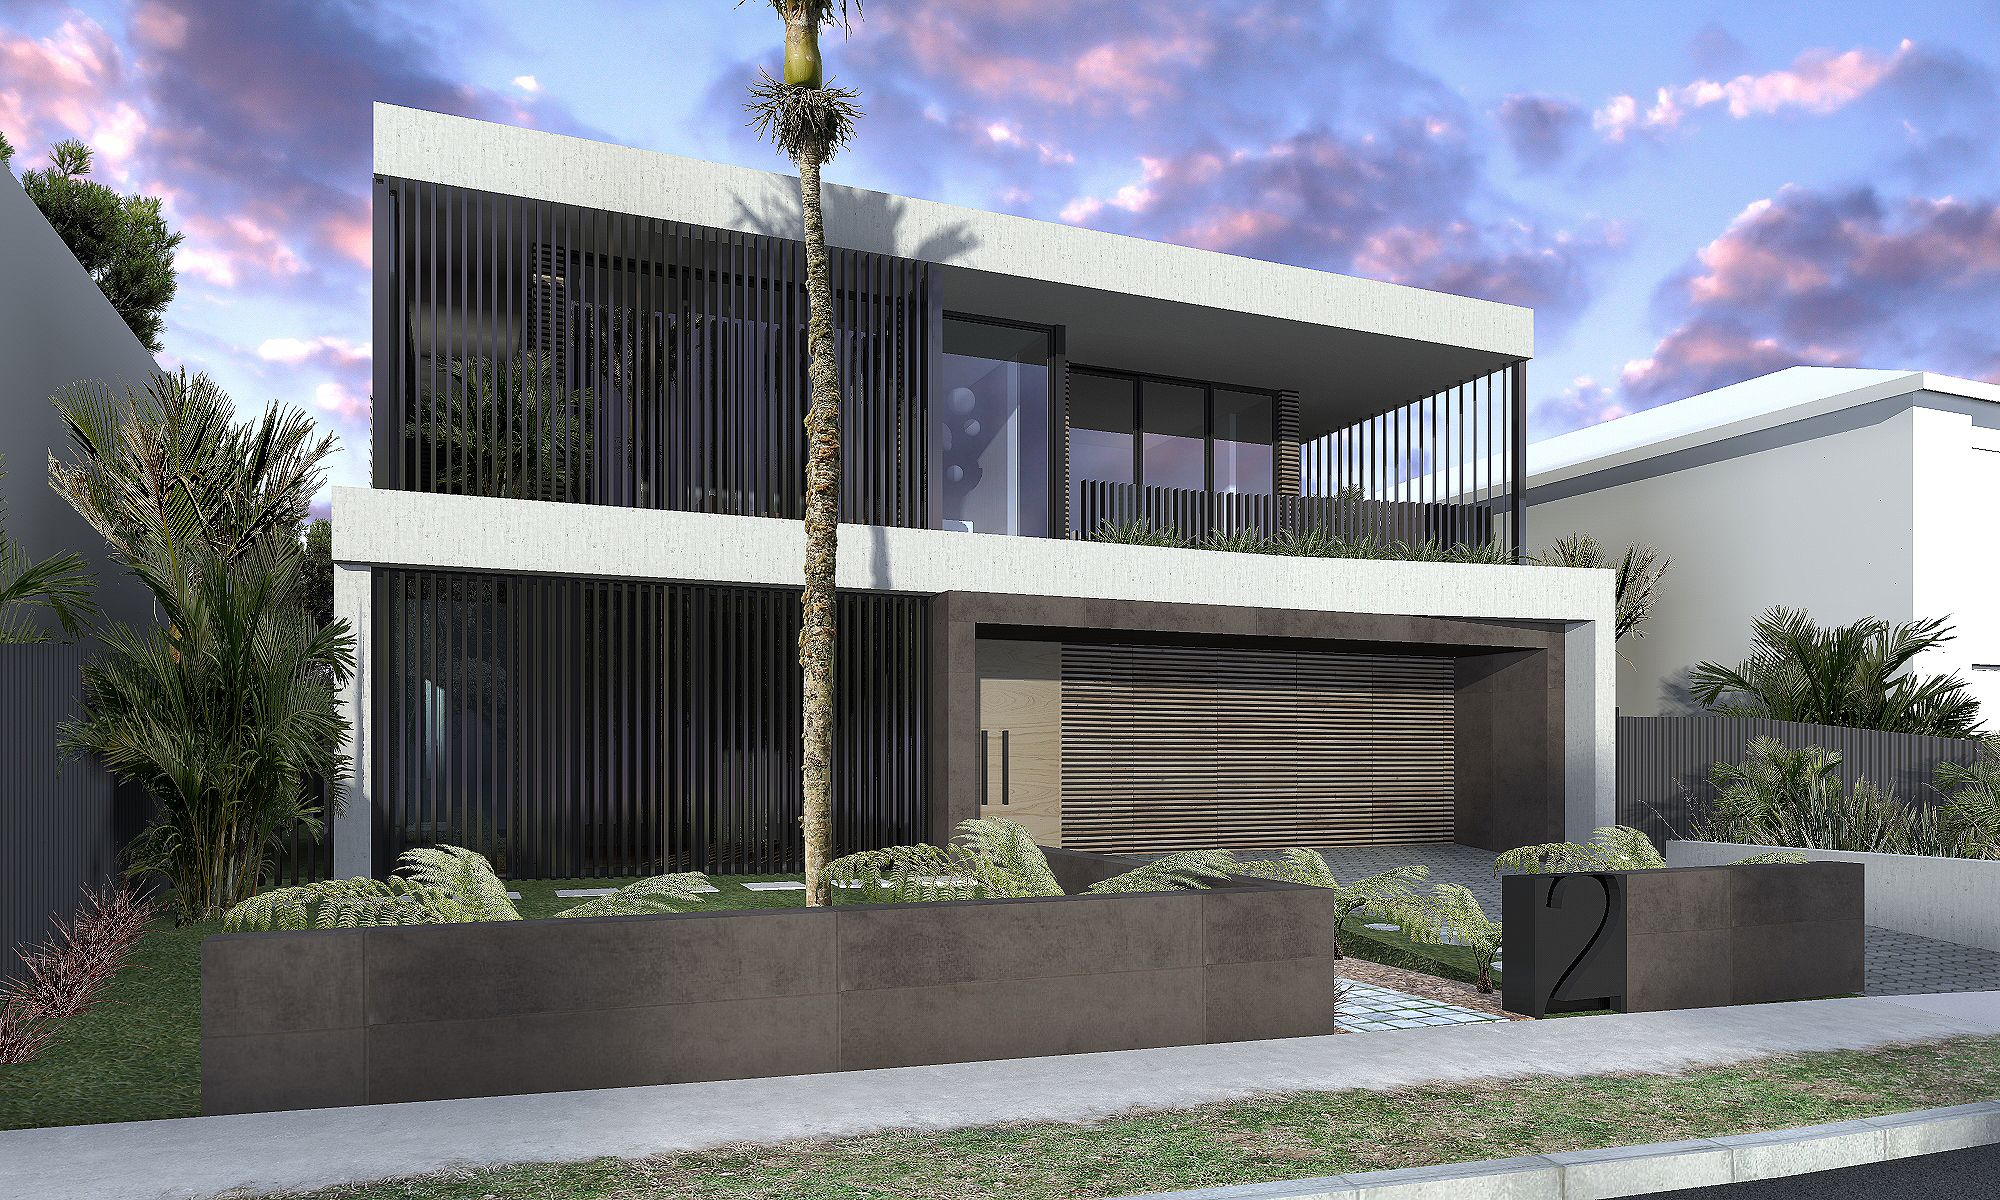 New contemporary modern architectural home interior maroubra randwick council glass timber stone double height space warm timber interior finish